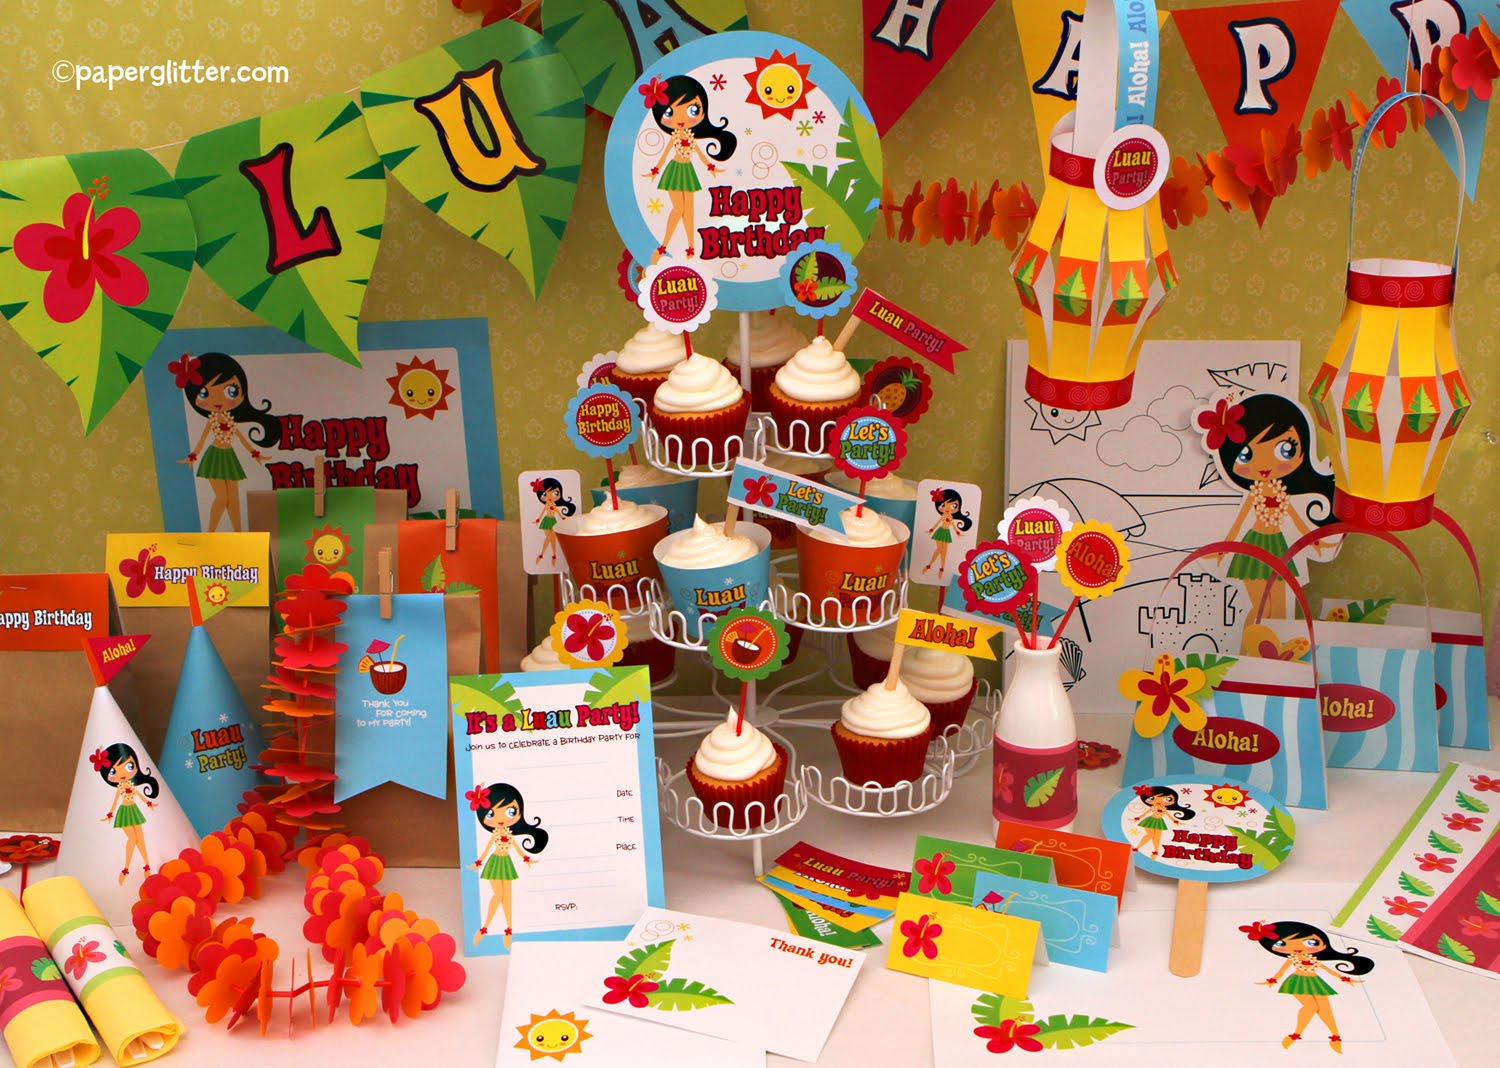 Tropical Themed Party Ideas Free Printables: Party Printable Giveaway And Free Cupcake Toppers